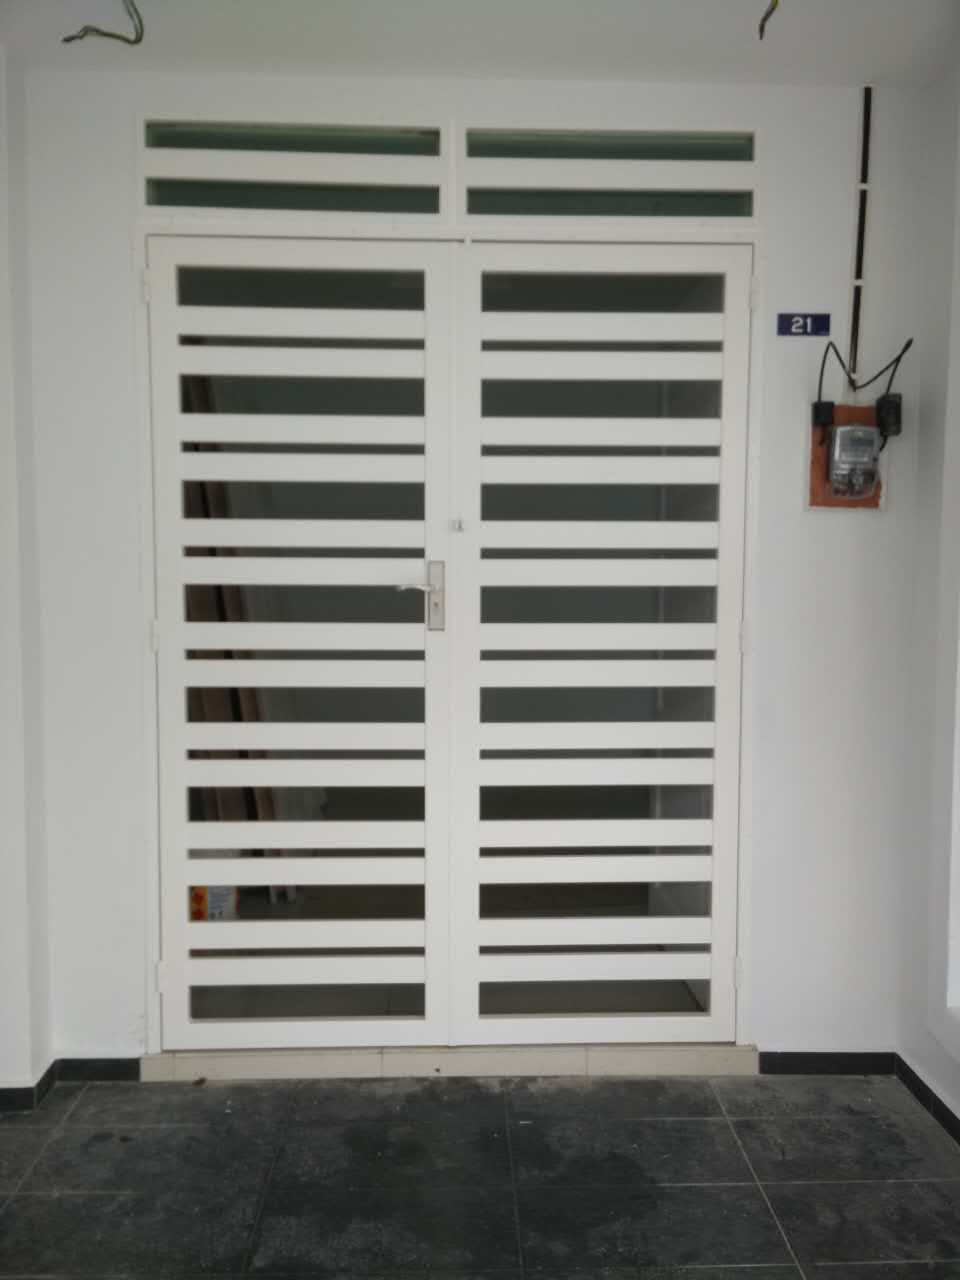 g-tech-engineering-melaka-door-grill-2018-15